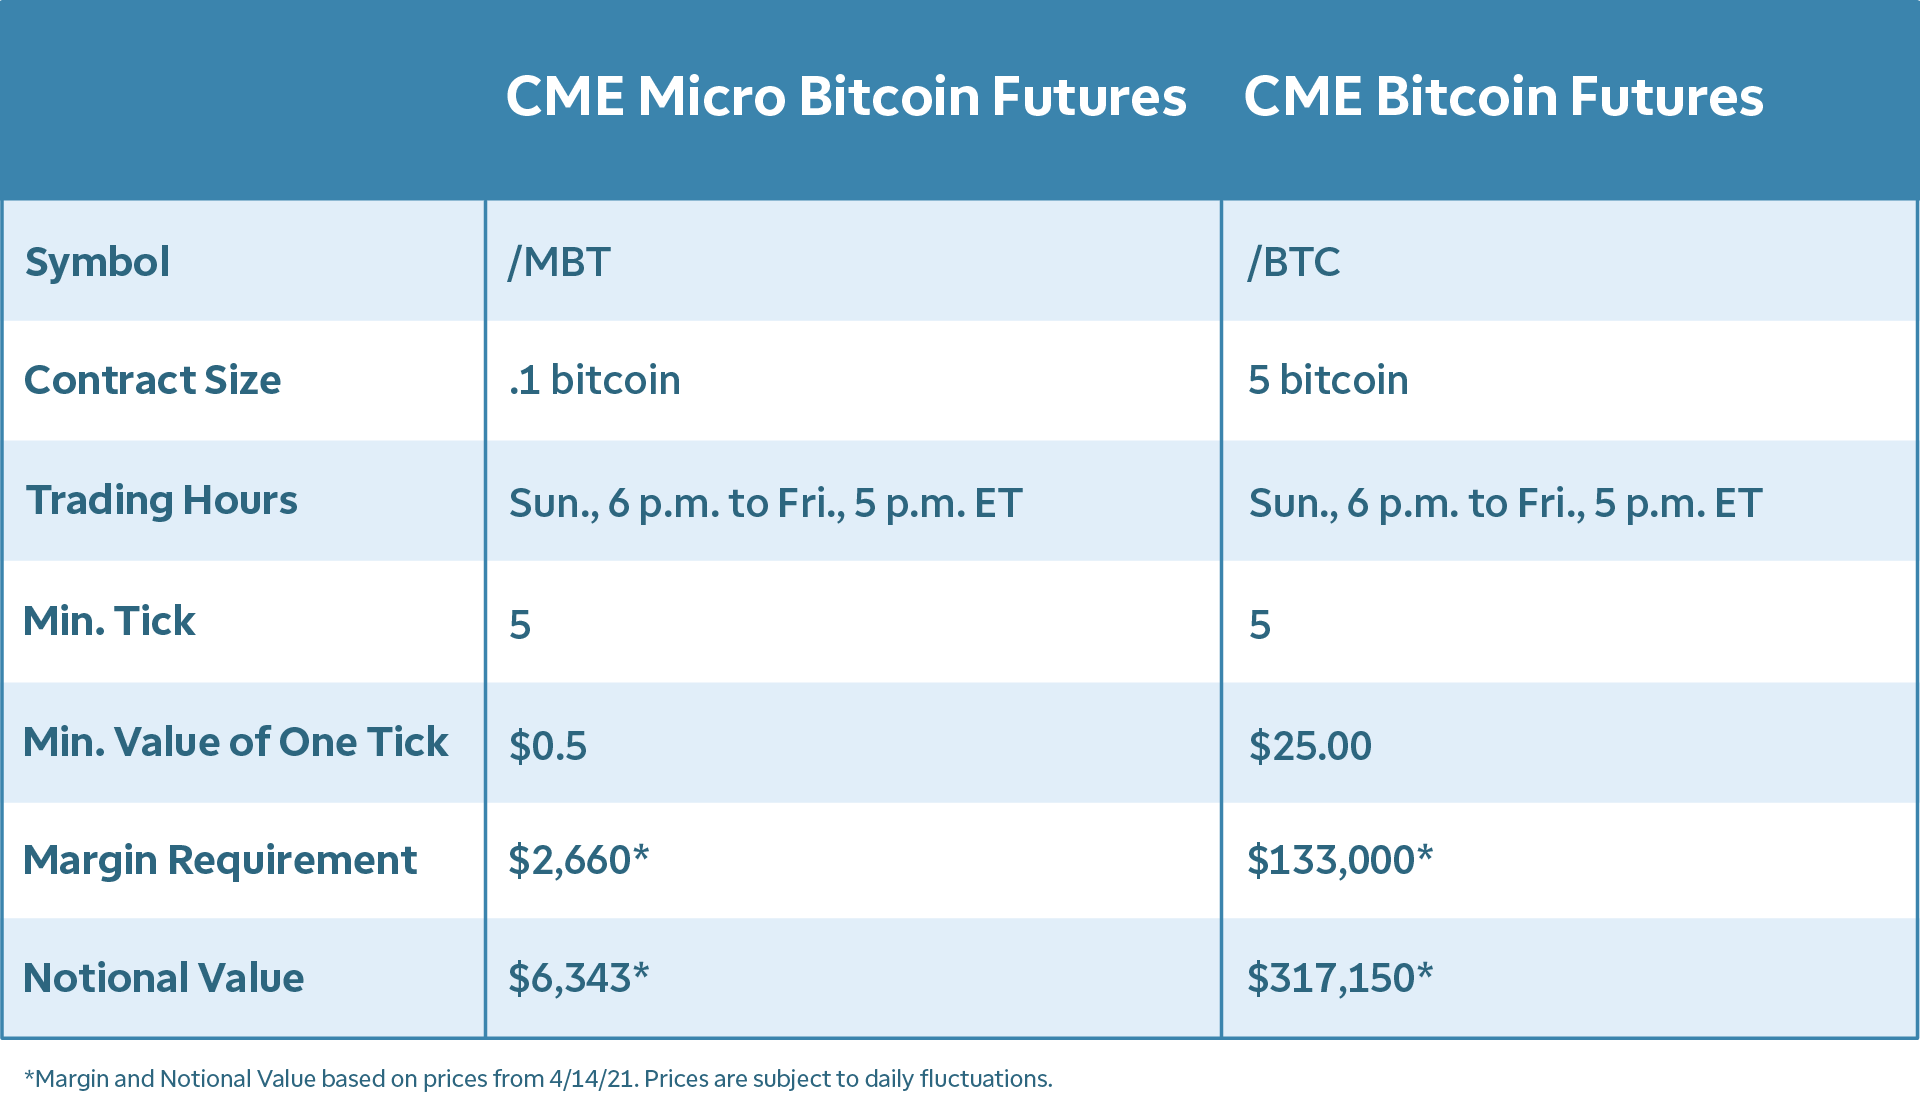 Micro Bitcoin Futures and Bitcoin Futures Specifications